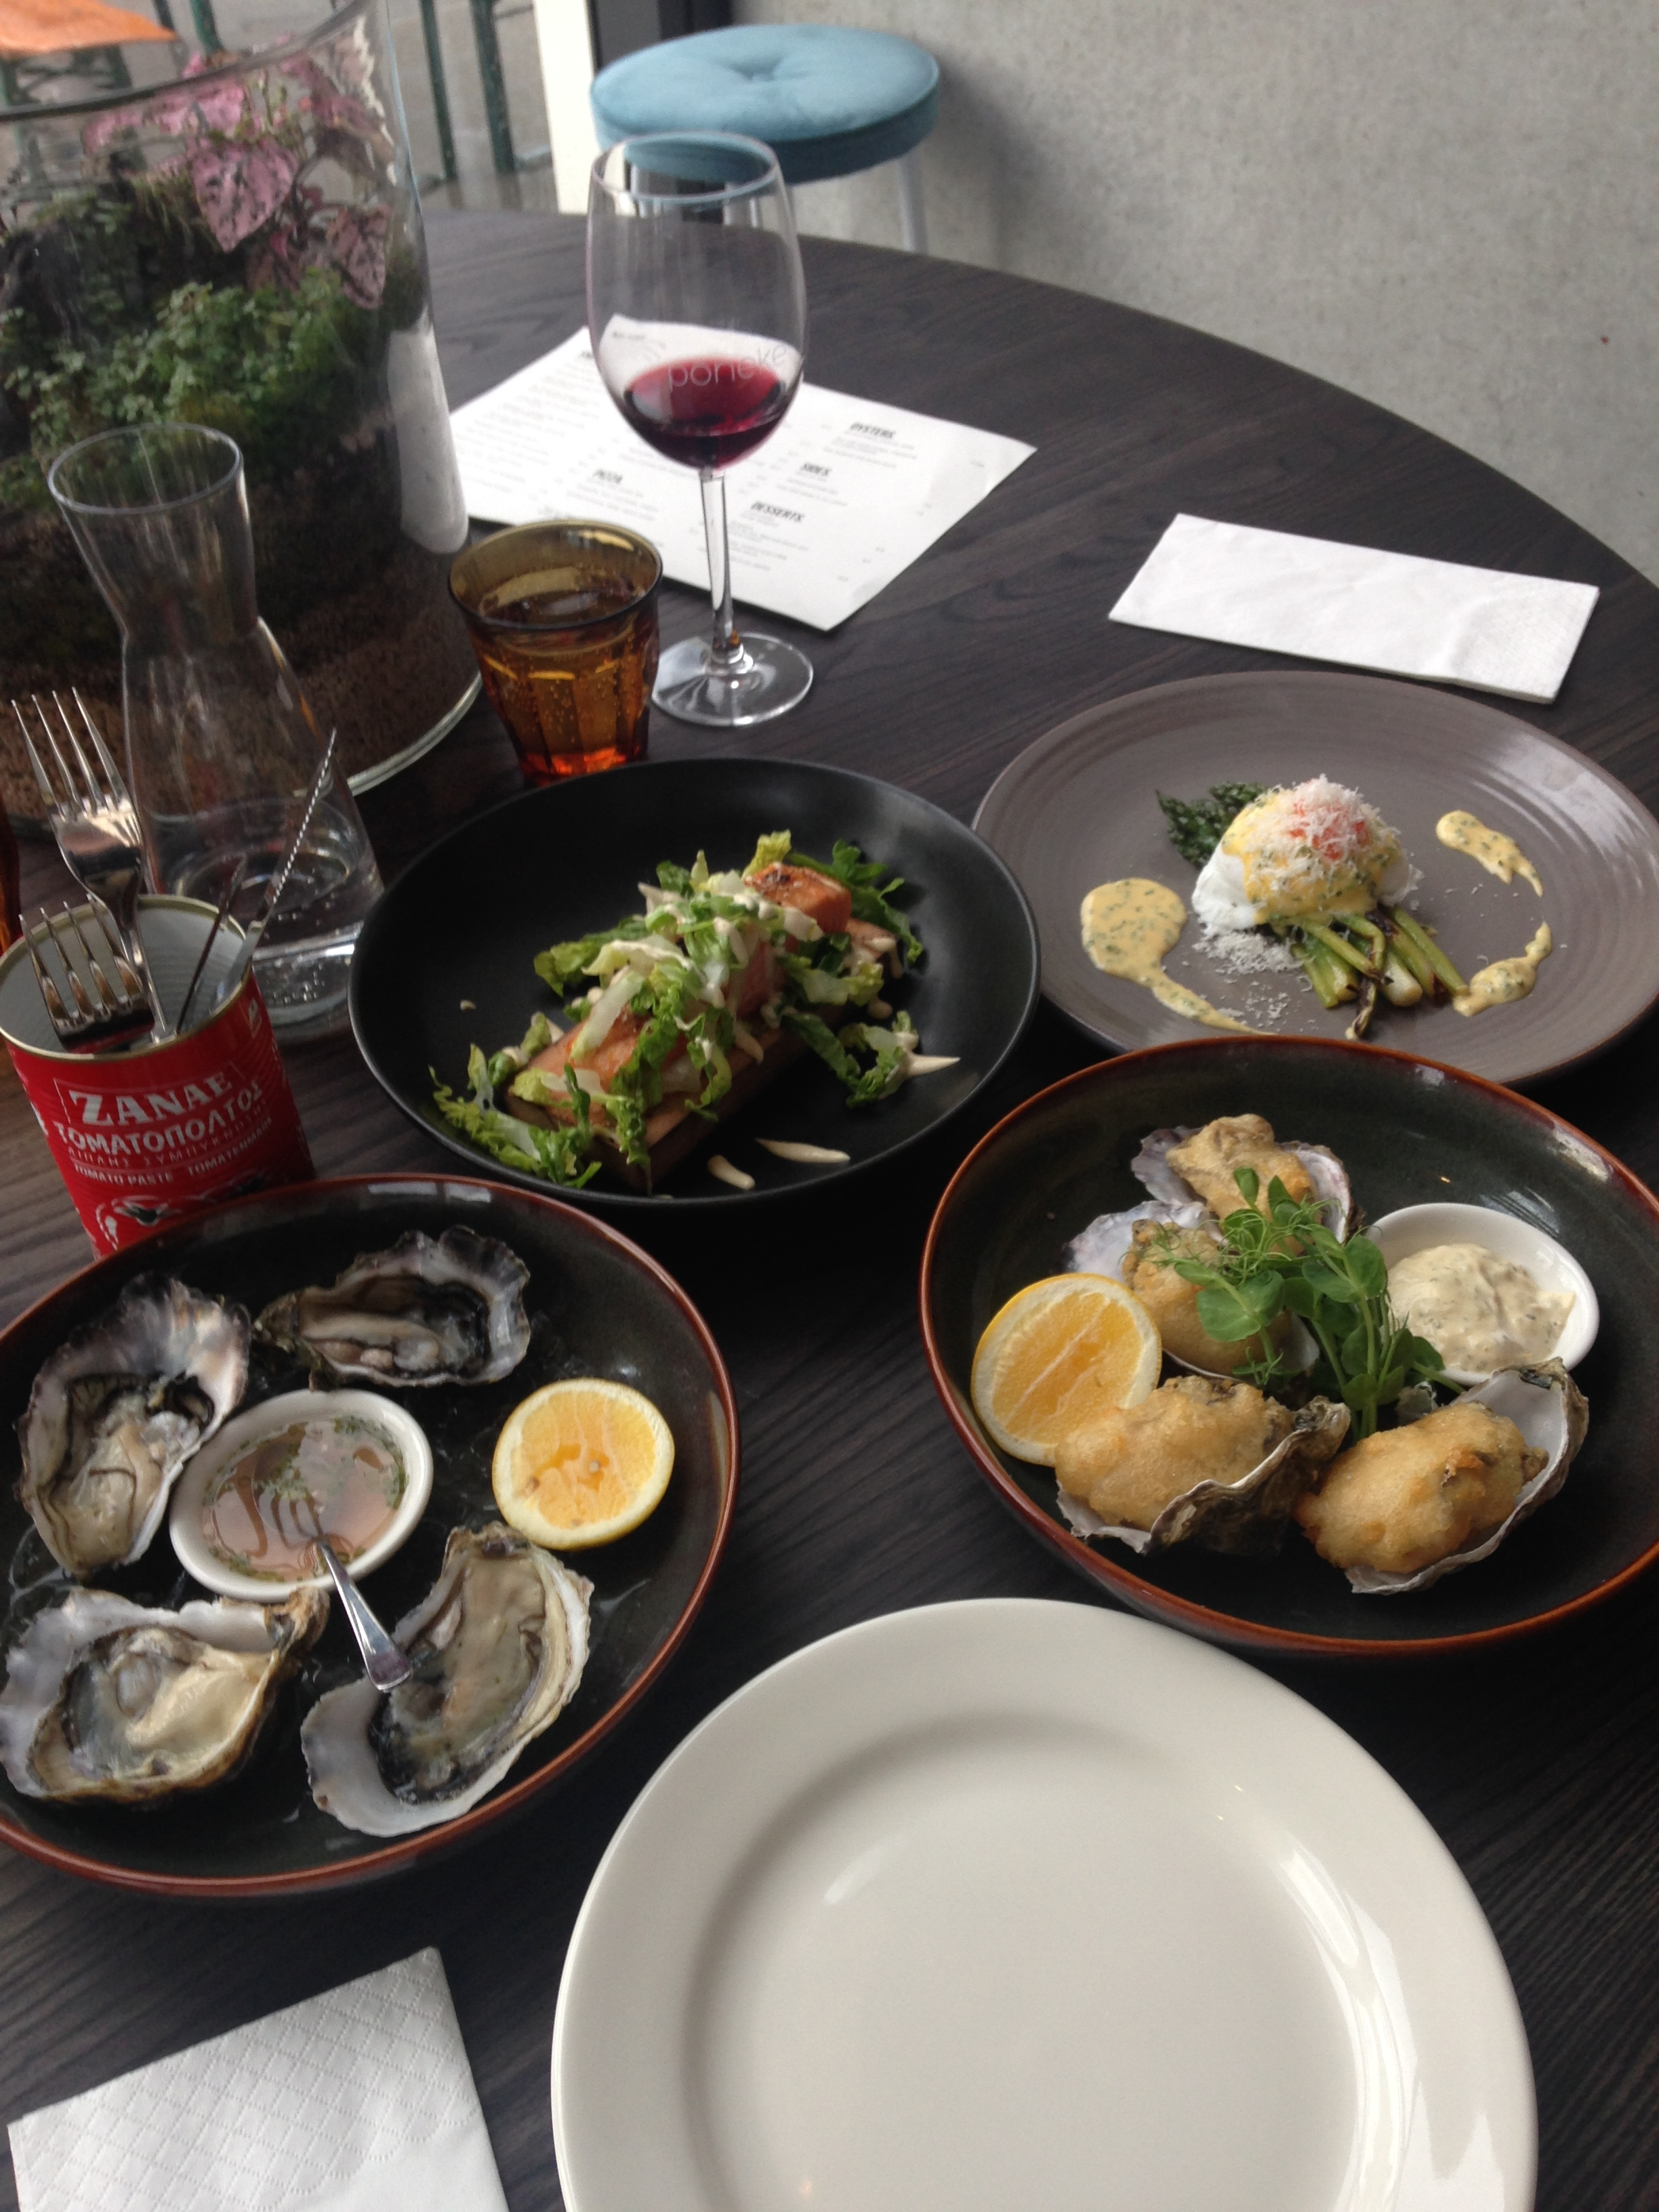 The Salmon was next level and wood smoked on the plinth it was served on & the oysters... welllll Oronga Bay- there is a Triumph coming your way VERY soon!